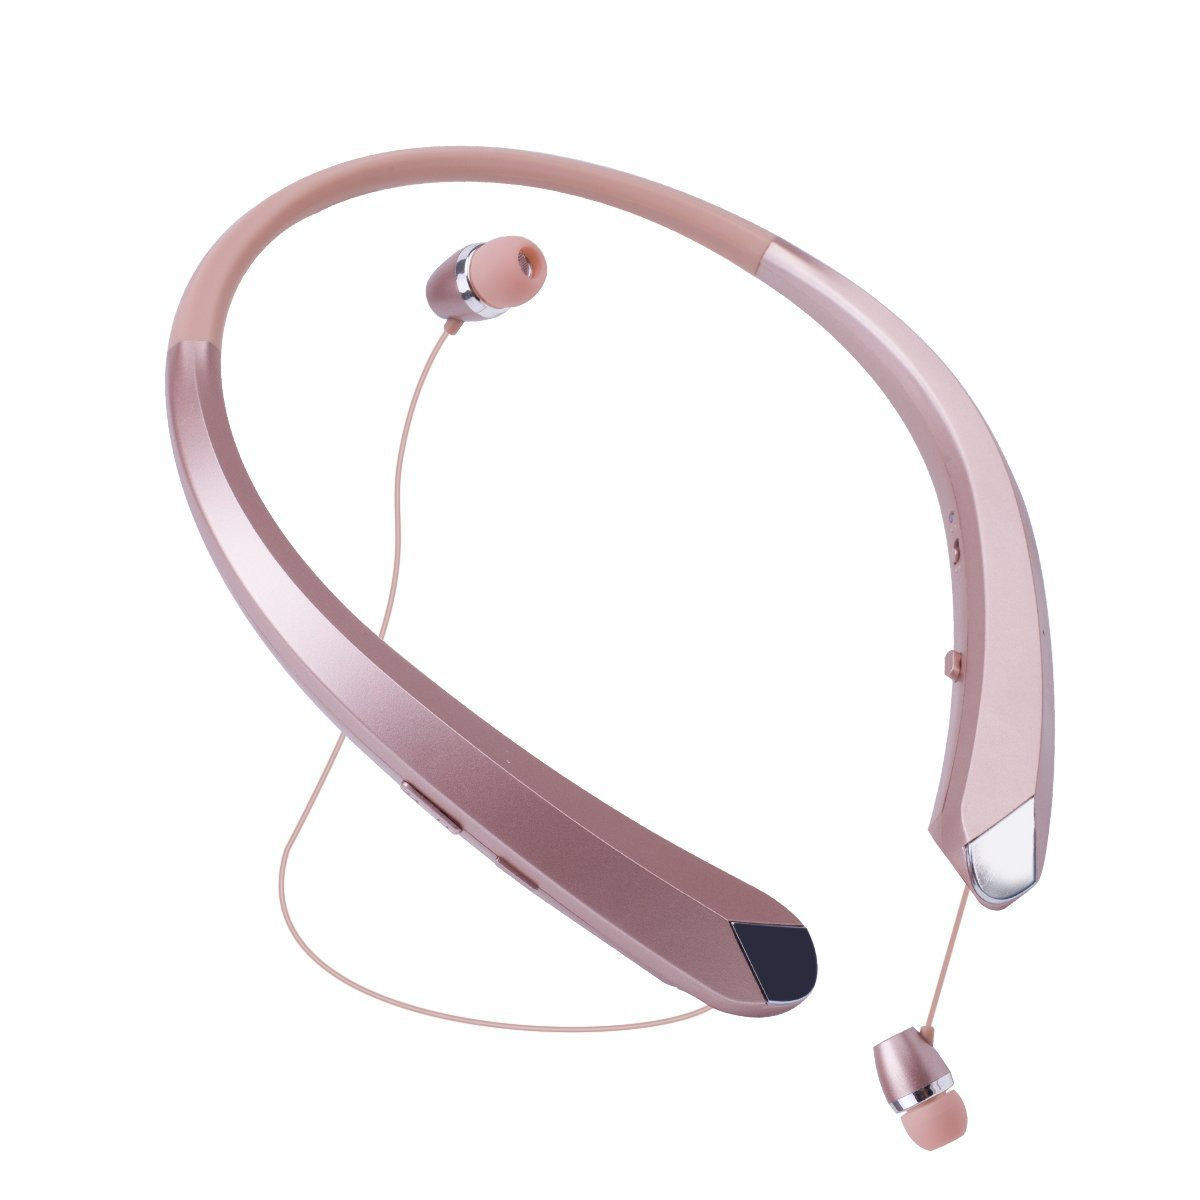 Bluetooth Retractable Headphones, Wireless Earbuds Neckband Headset Stereo Sweat-proof Sports Earphones with Mic for iPhone X/8/7/6, Android and Other Bluetooth Devices by Kikistep (Rose Gold) by Kikistep